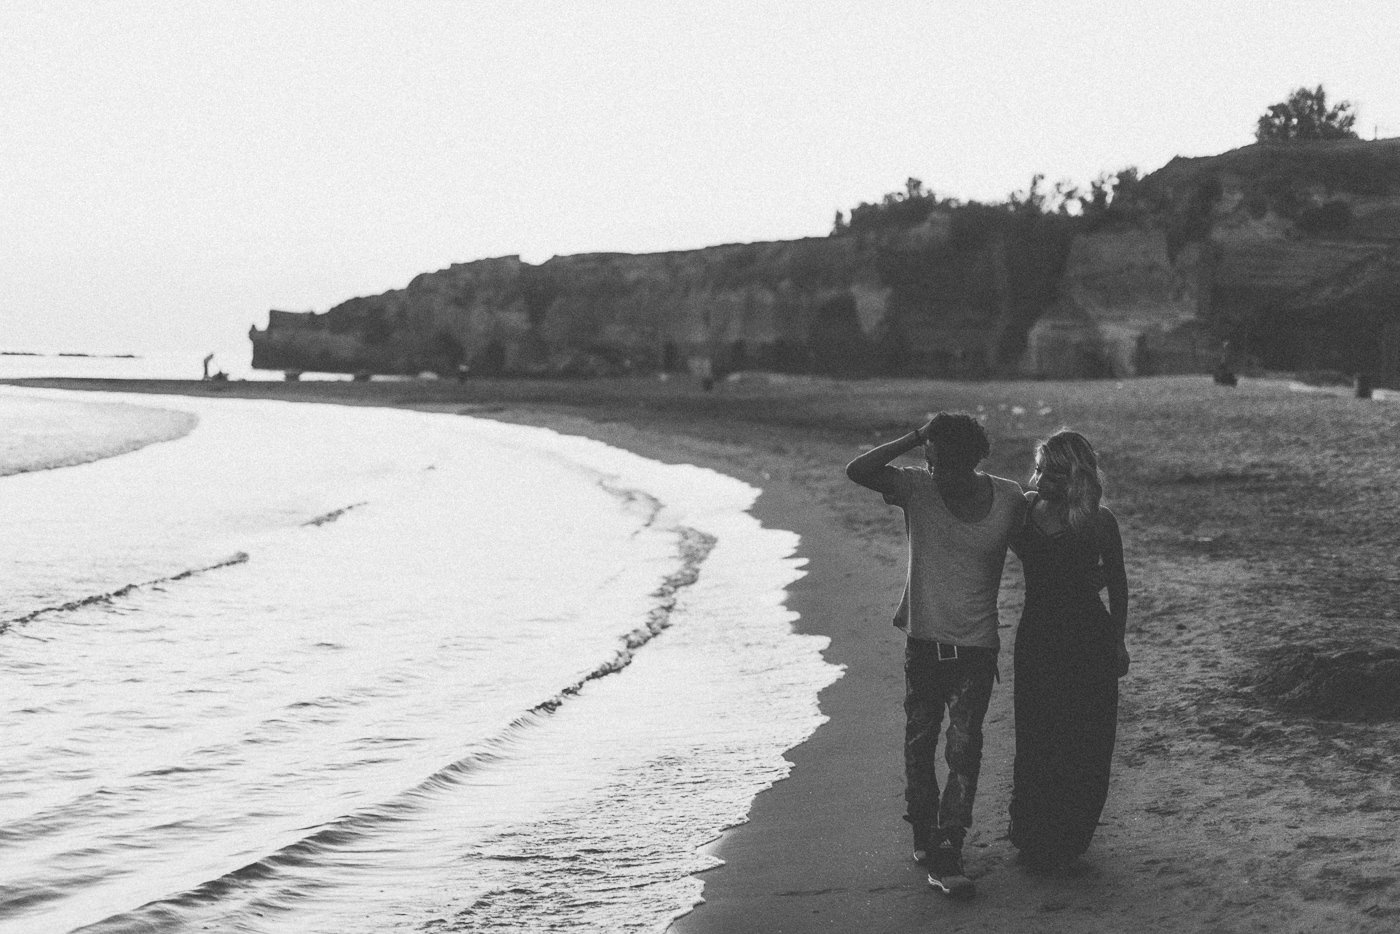 Destination-wedding-photographer-for-couples-anzio-rome-italy-italia-77